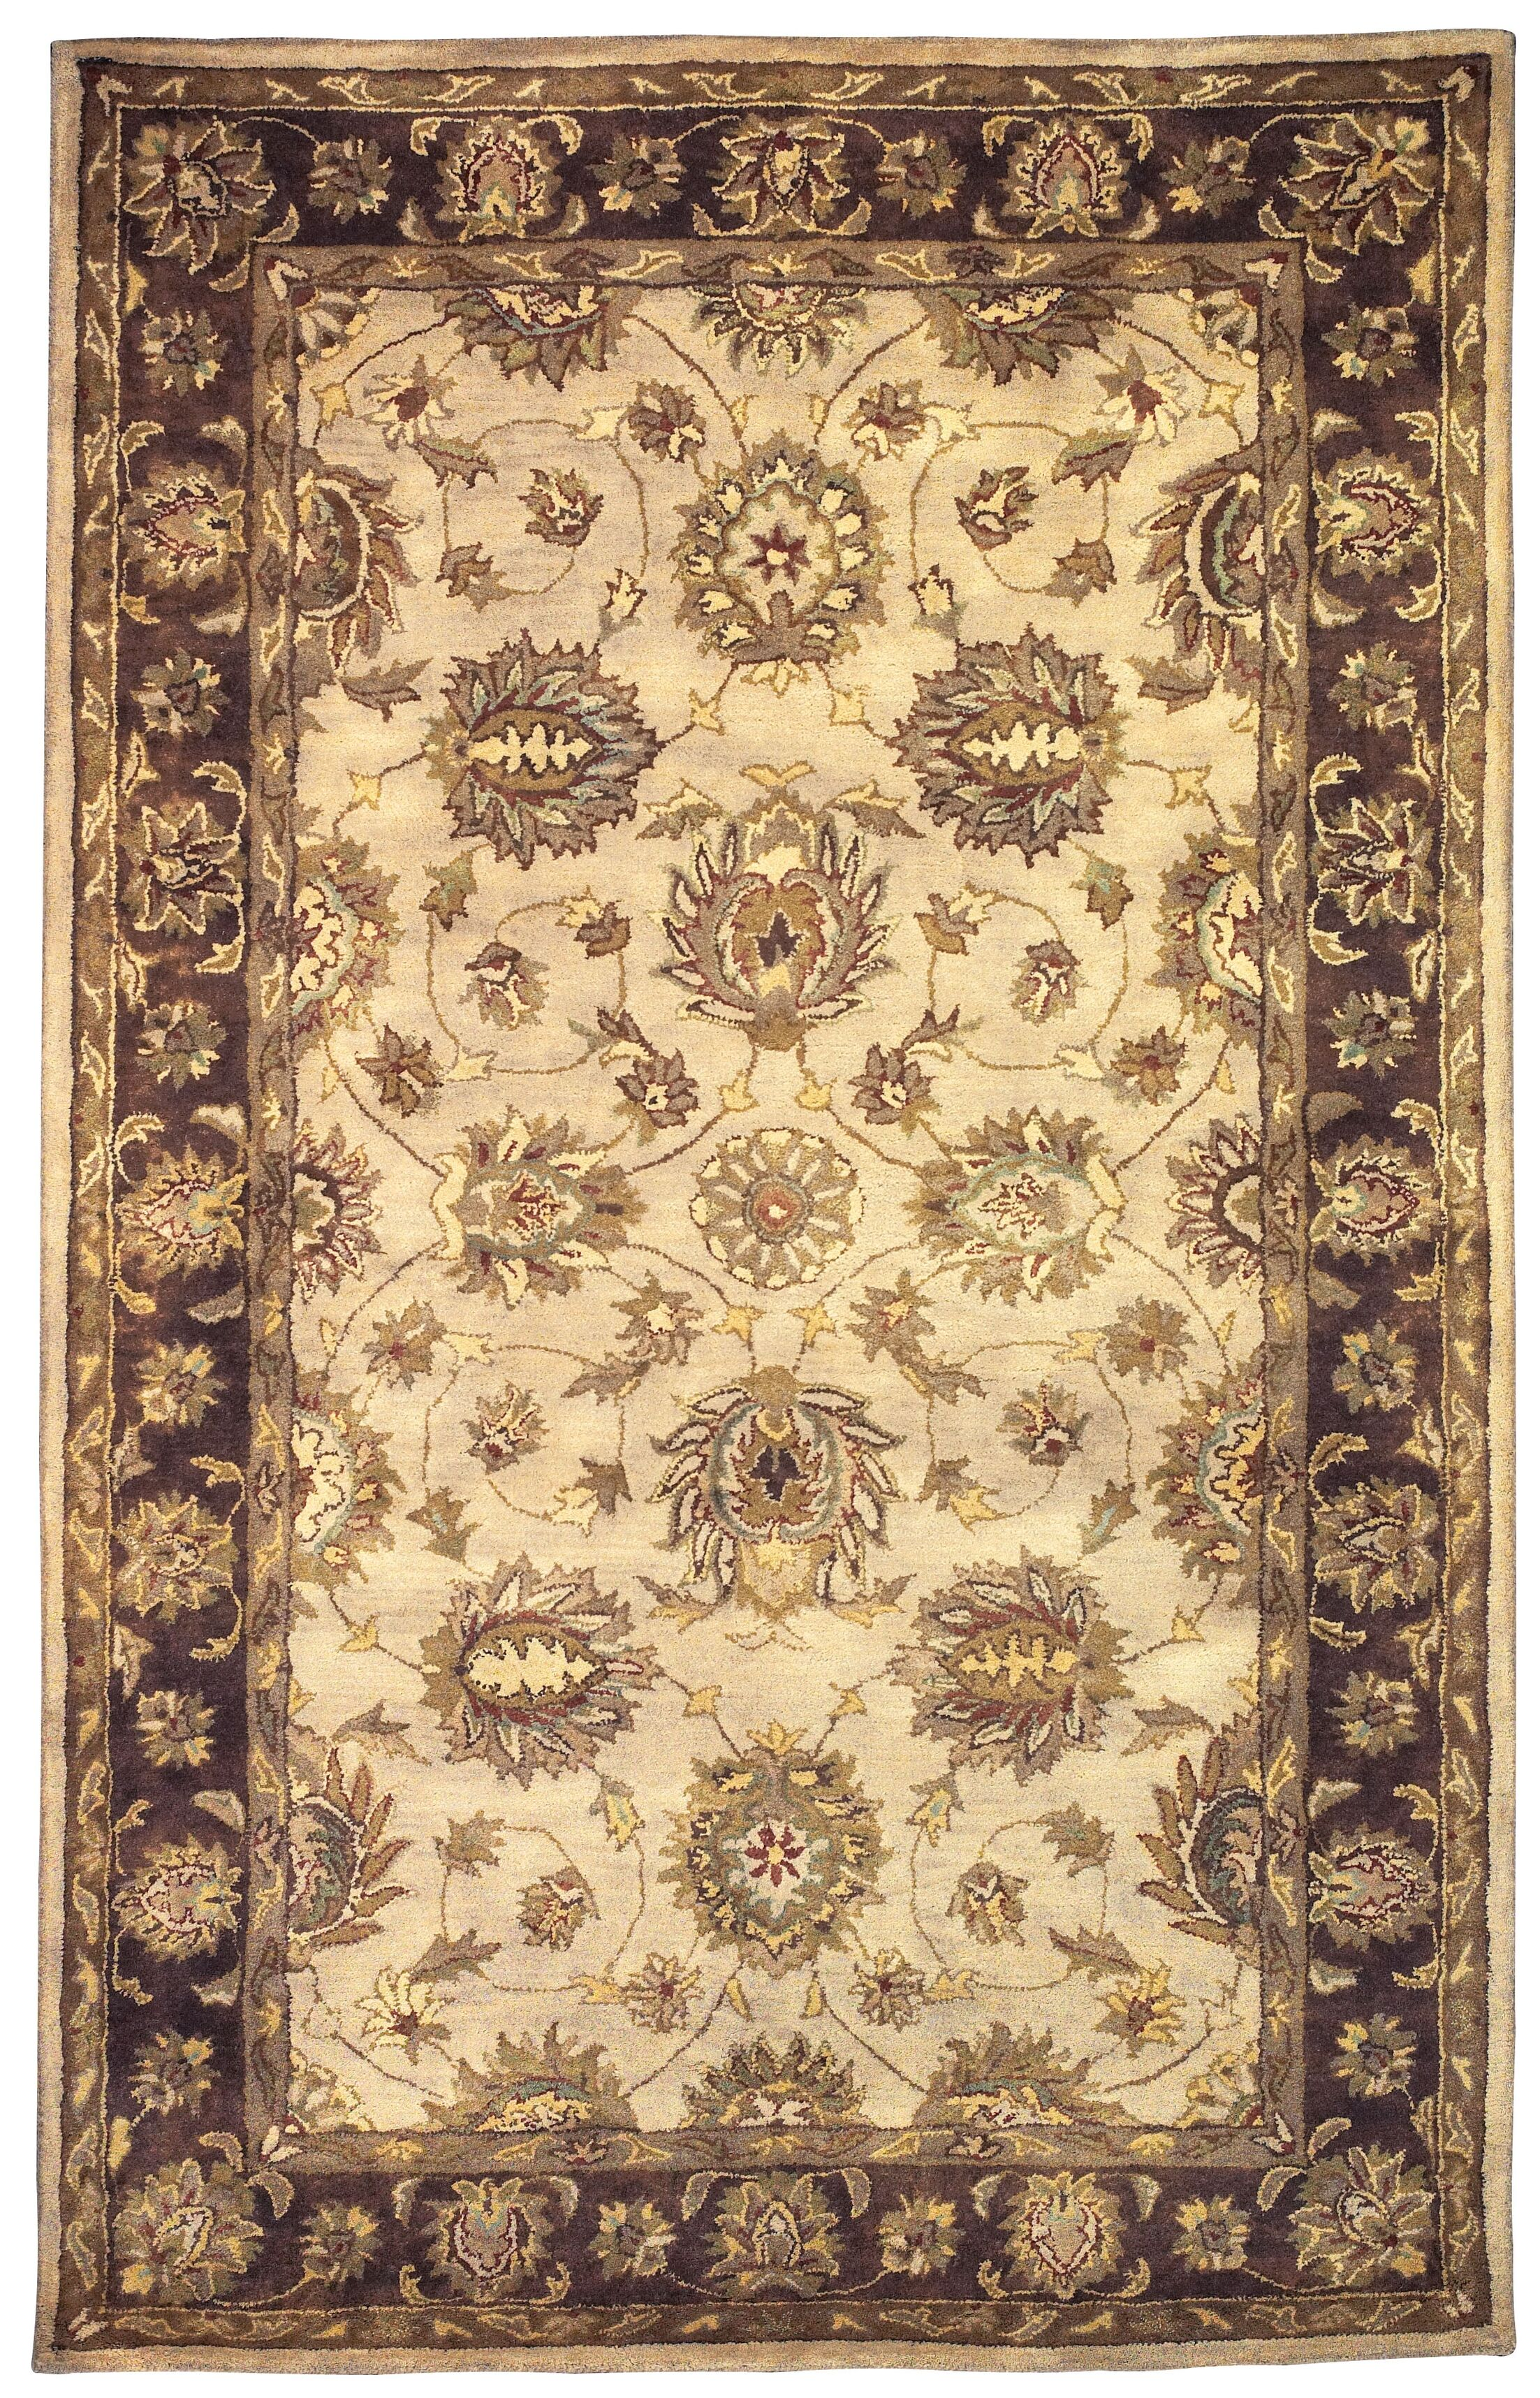 Gattis Hand-Tufted Beige/Brown Area Rug Rug Size: Rectangle 5' x 8'